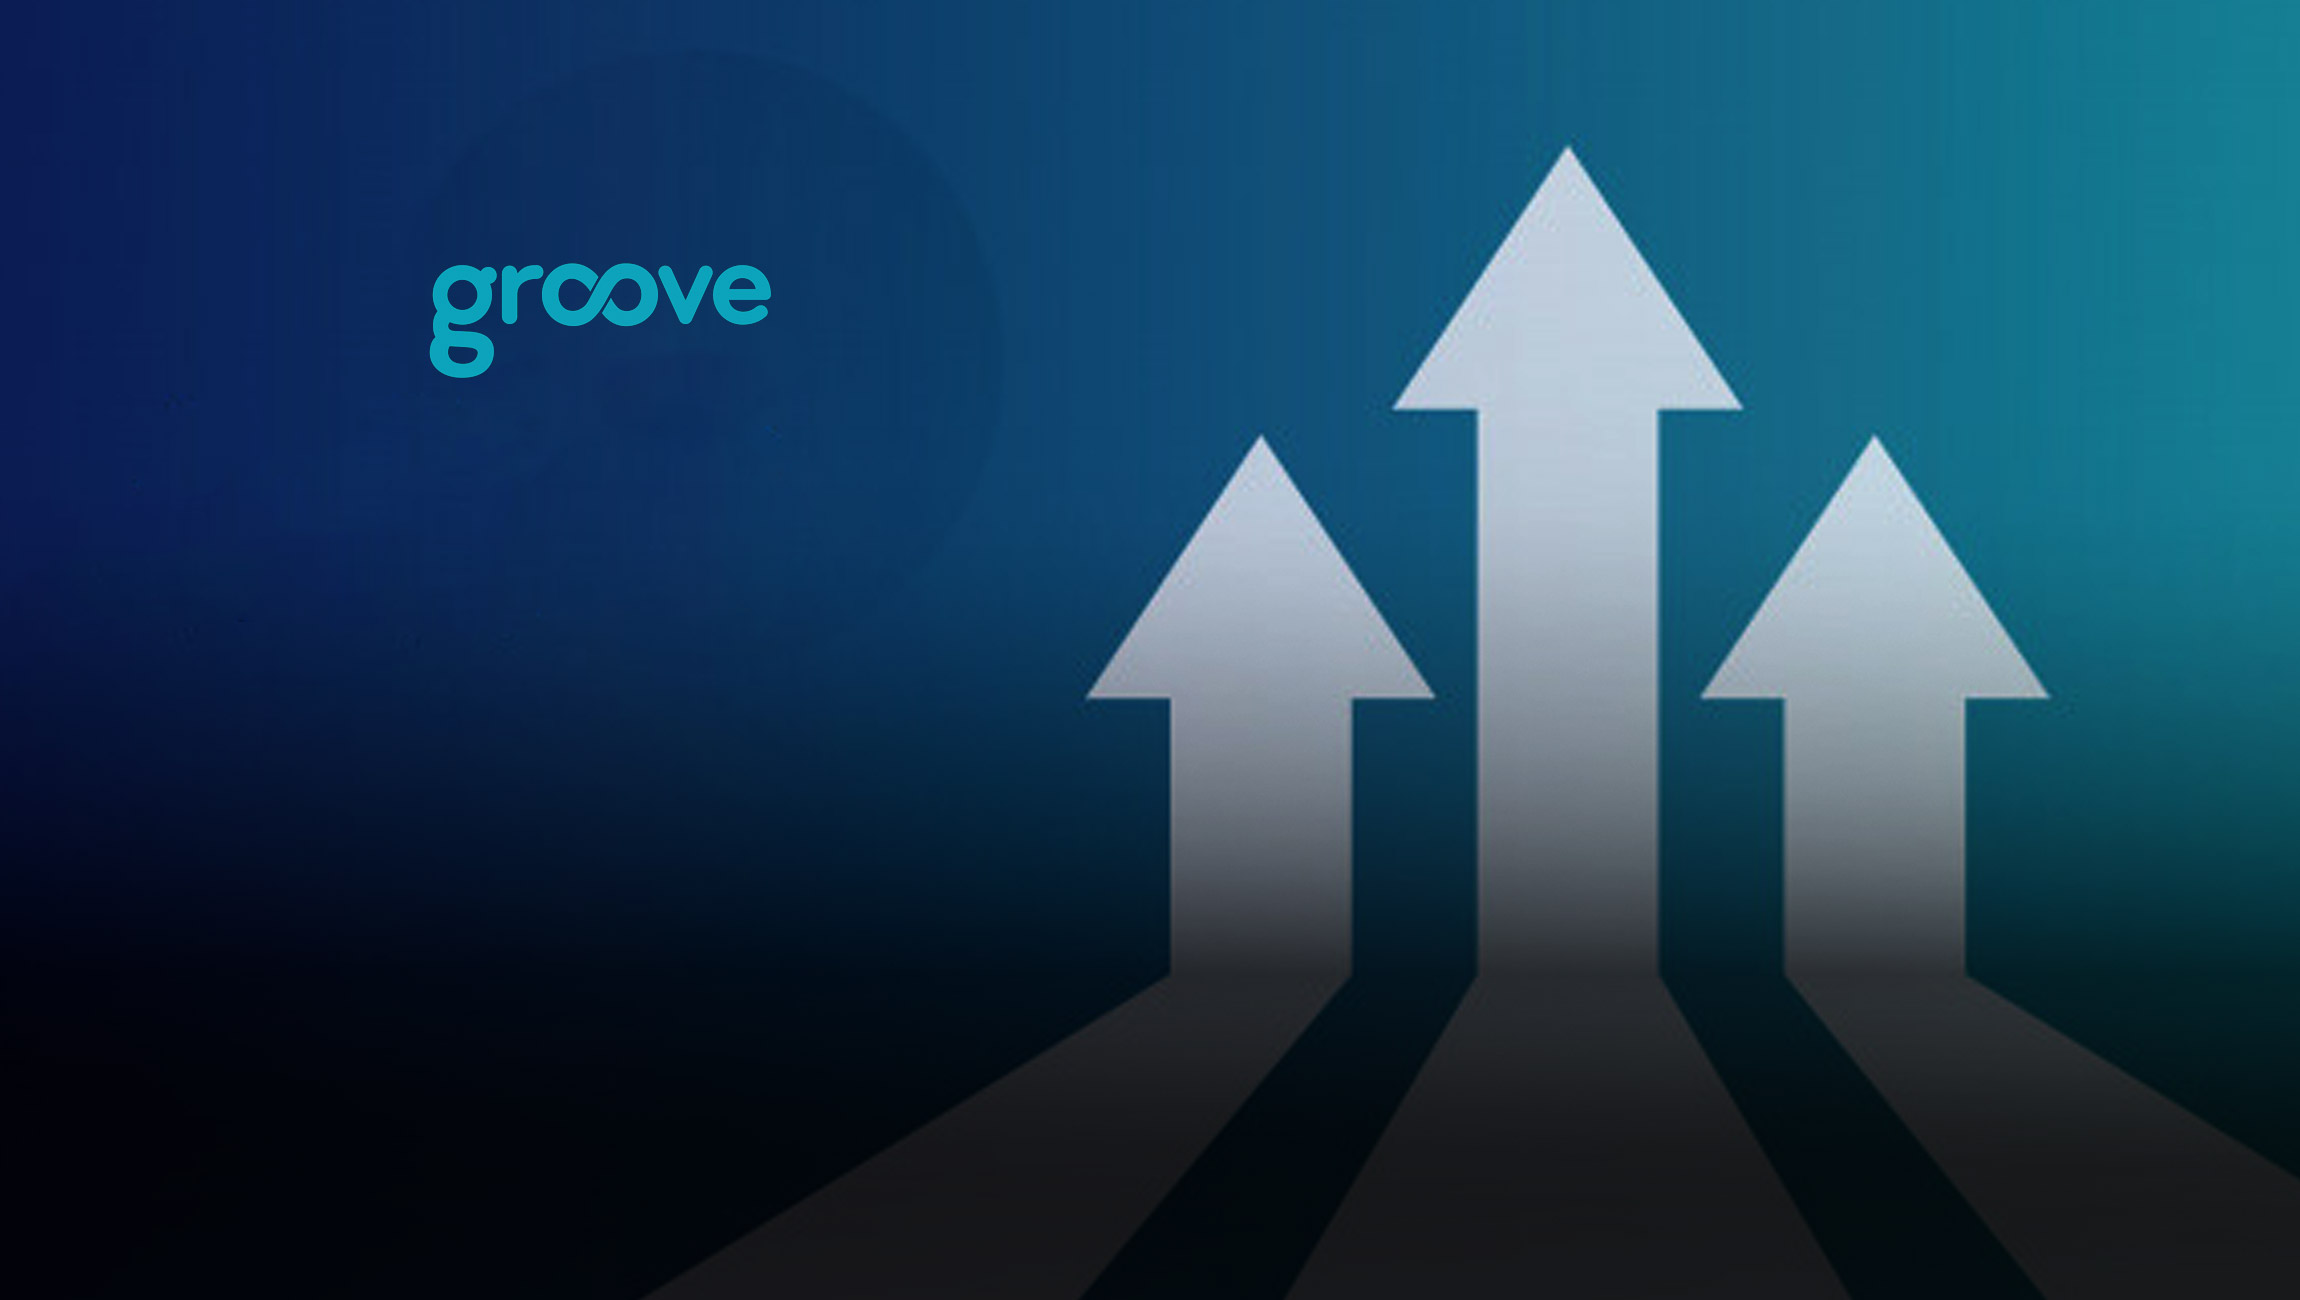 Groove Ranks #1 in Enterprise Momentum Across Four Sales Tech Categories in G2 Winter 2021 Reports